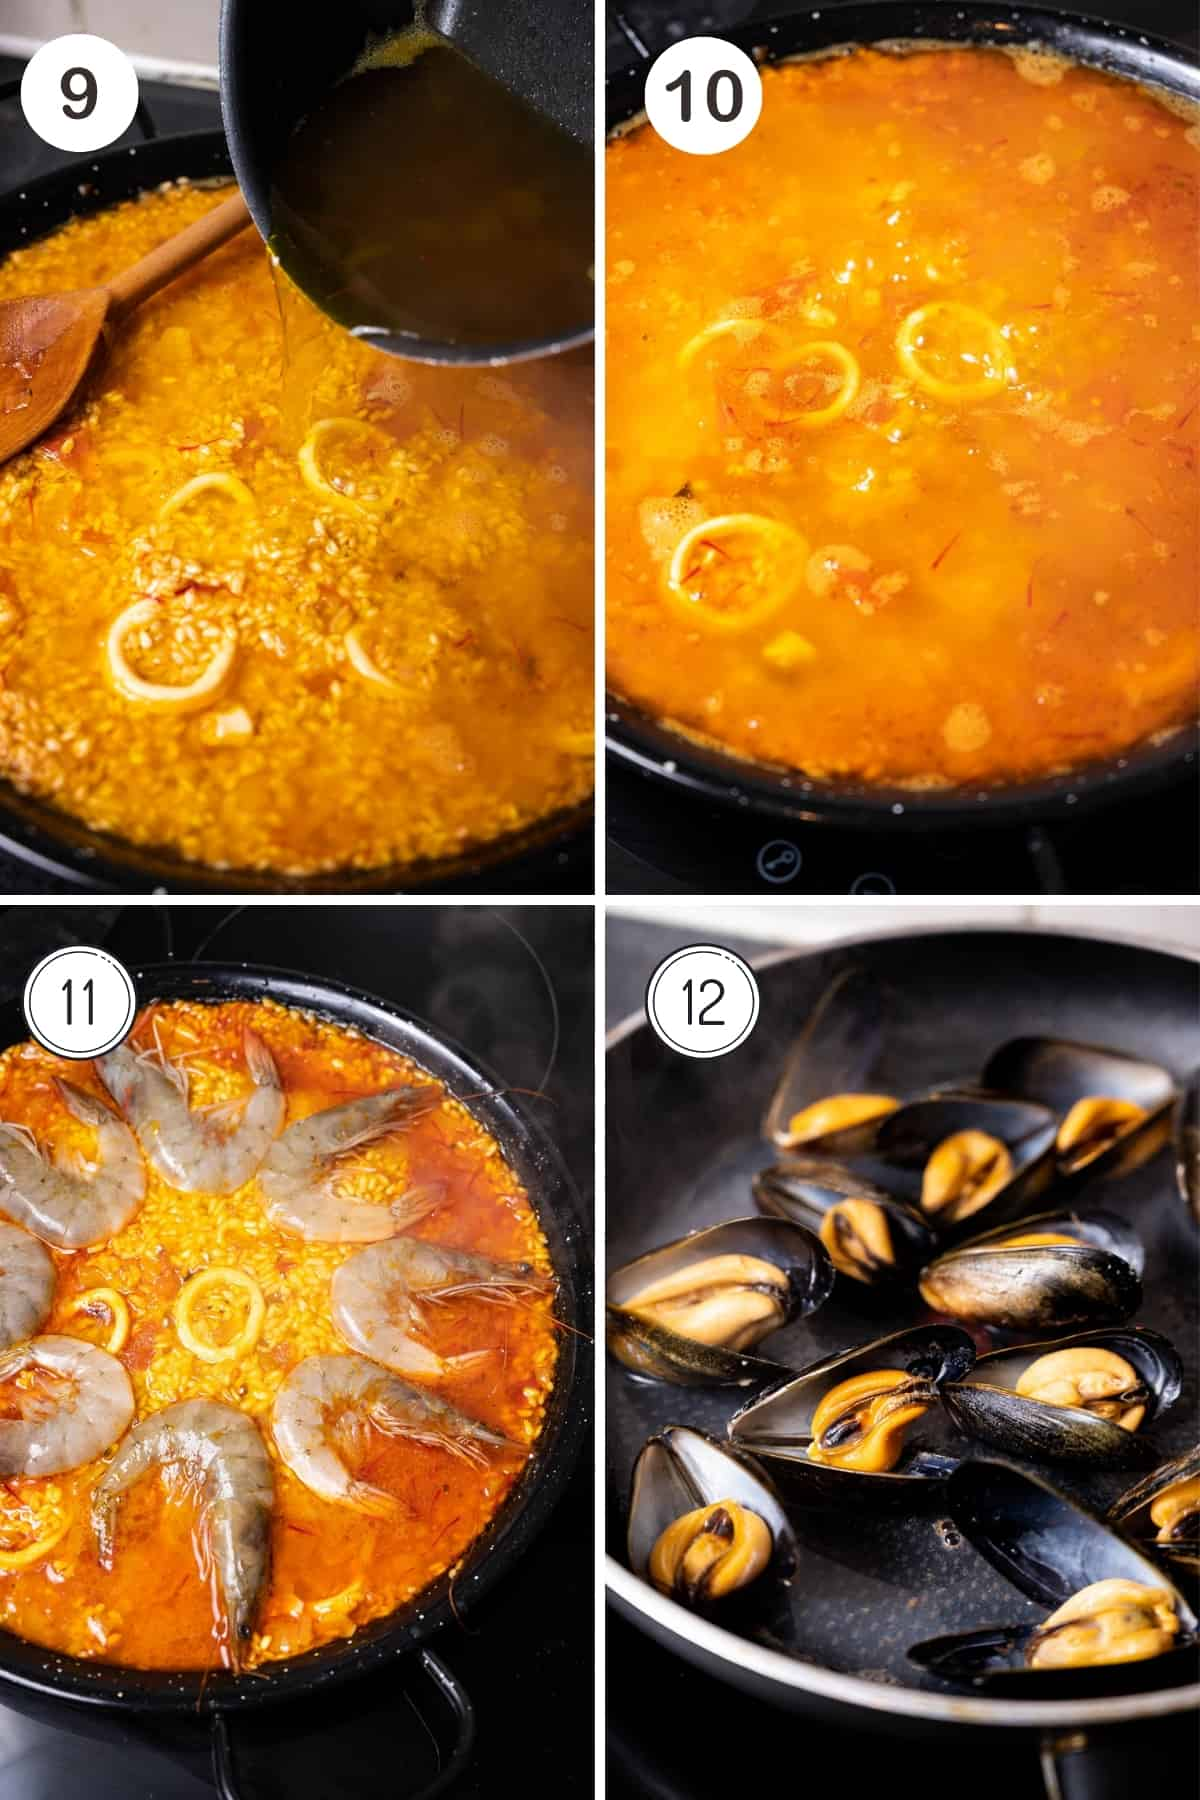 Seafood paella steps 9-12 in a grid. Adding stock and then shrimp to the rice. Steaming mussels.